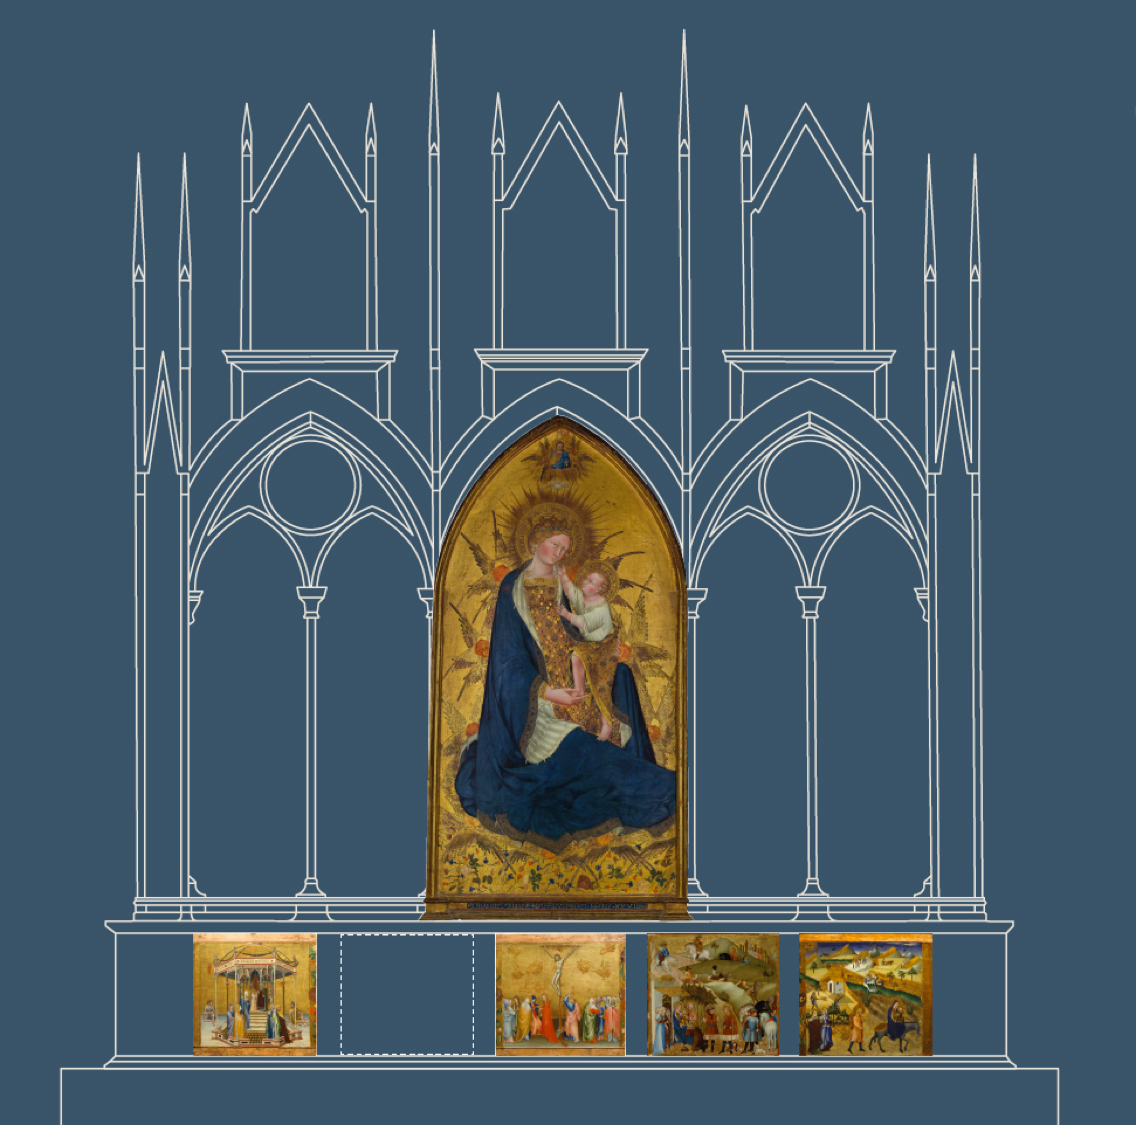 Diagram showing the architectural surround of the Branchini Altarpiece with surviving panels